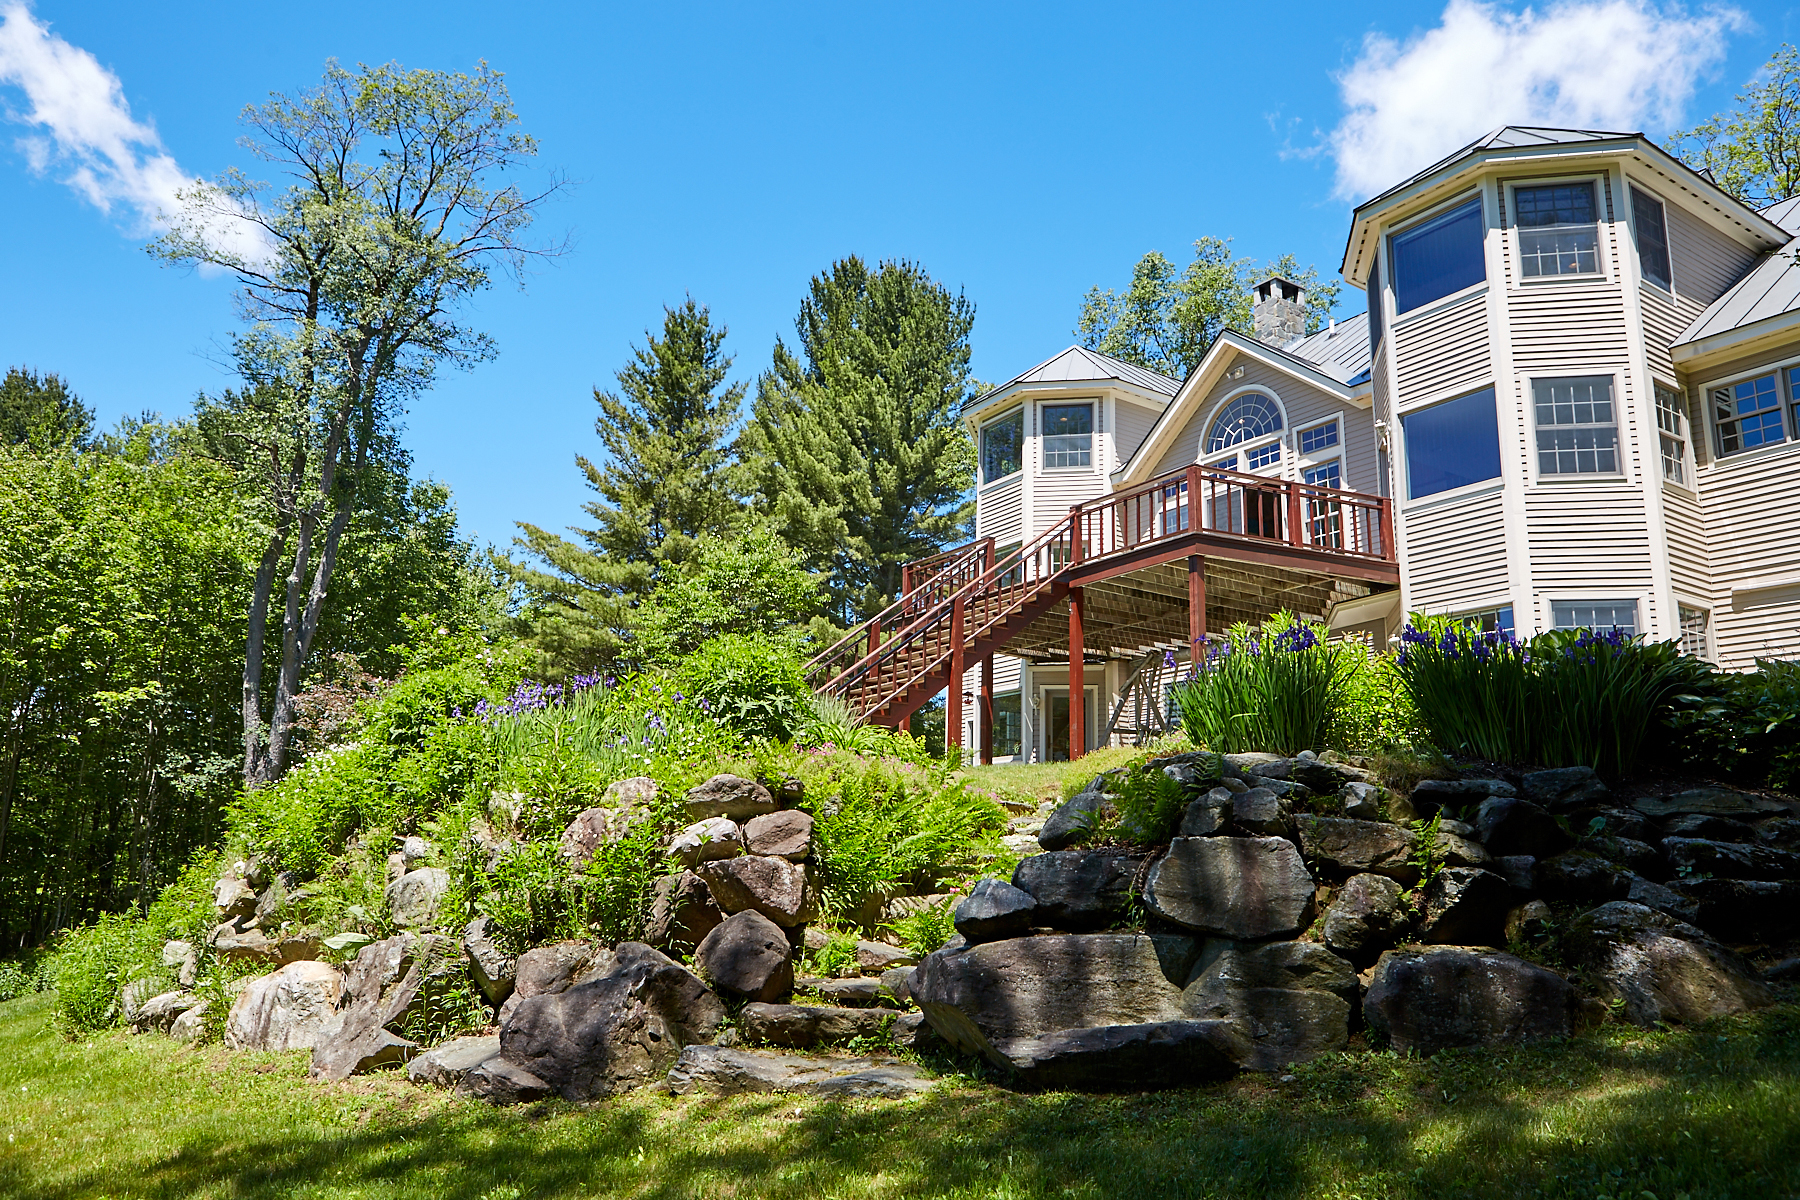 Single Family Homes for Sale at Stratton Views in the Weston Hills 15 Casper Lane Weston, Vermont 05161 United States